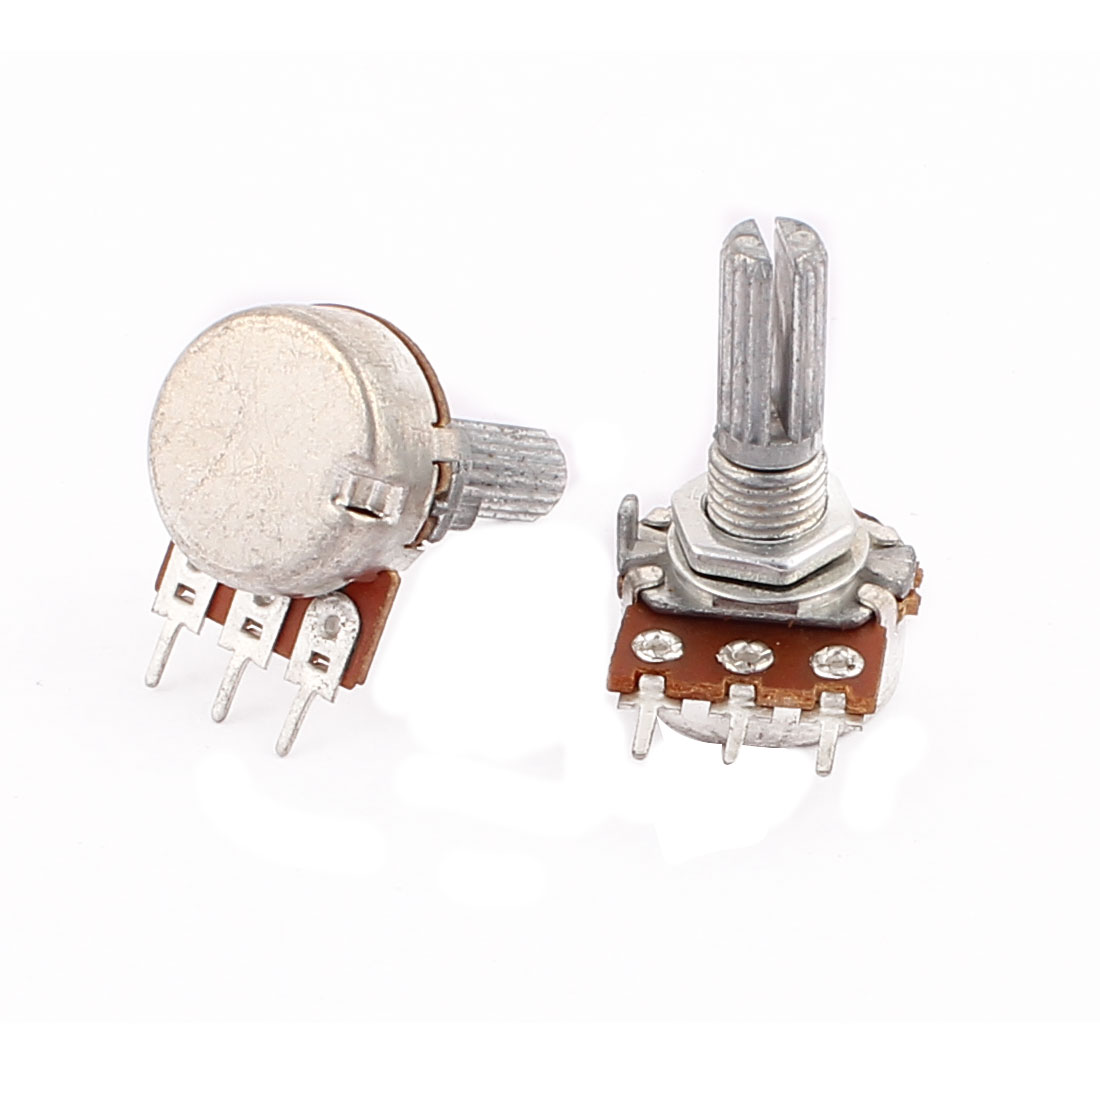 2 Pcs B50K 50K Ohm 3 Terminals B Type Rotary Potentiometer w Spacers 29 x 16mm